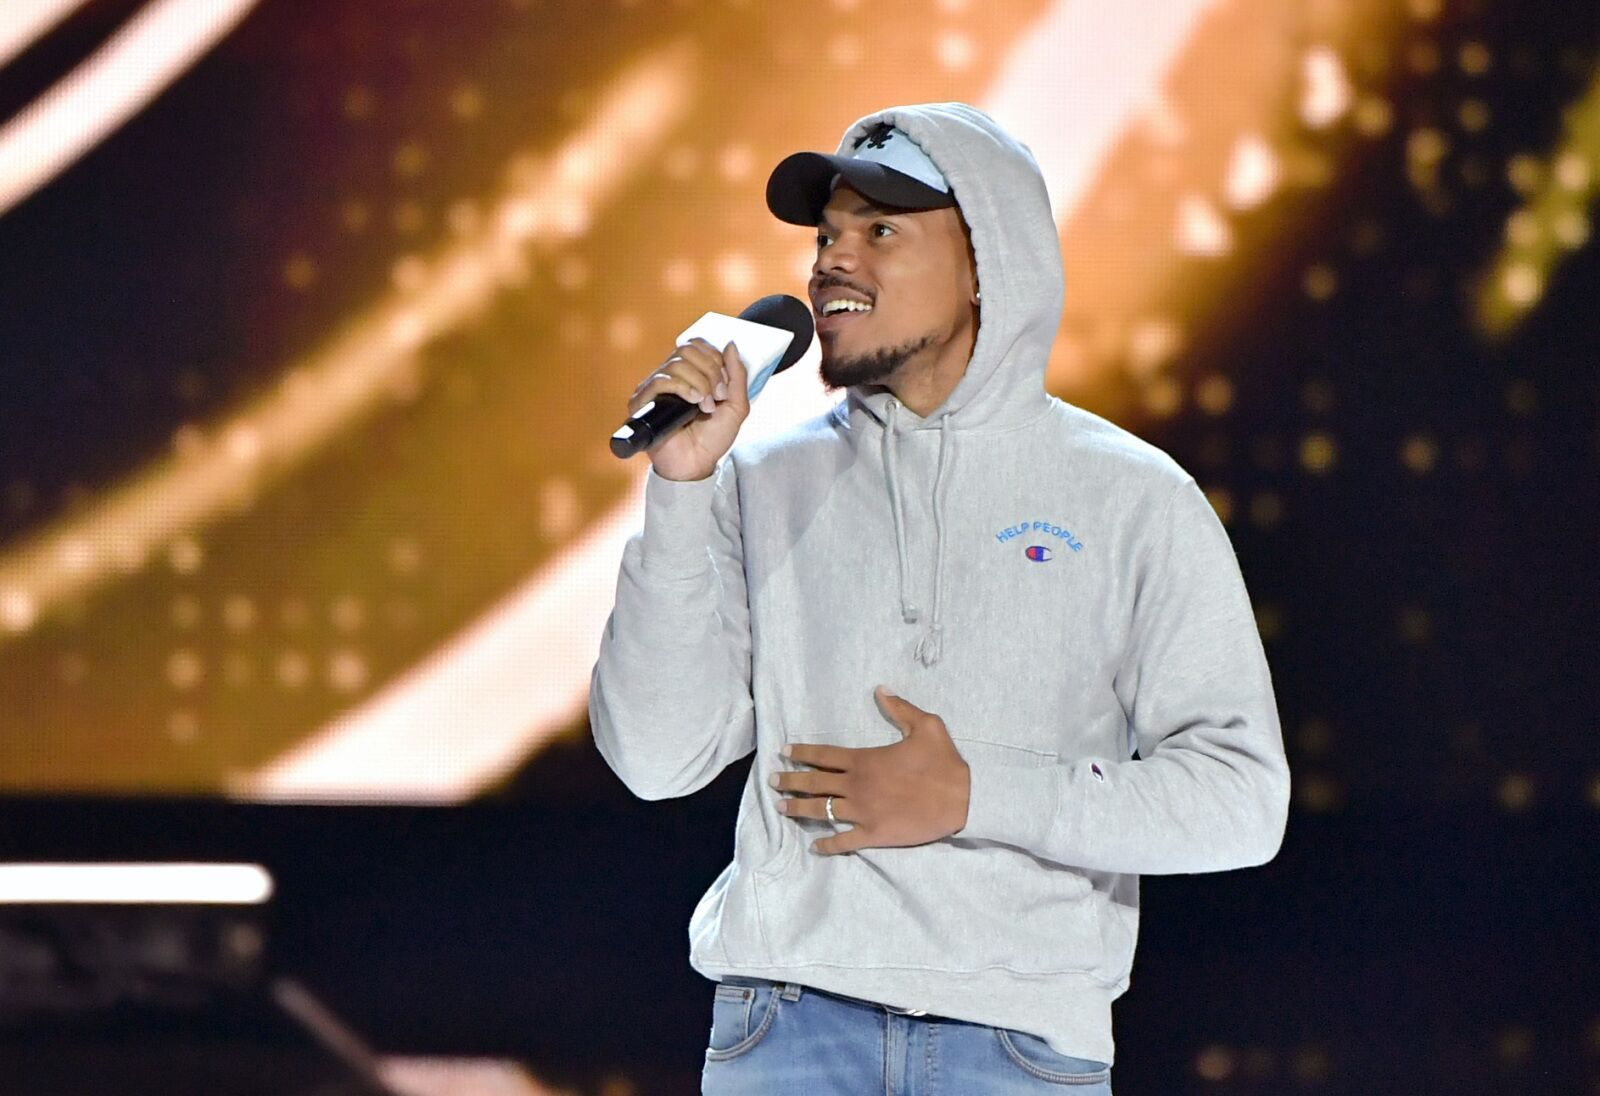 Chance the Rapper is working on his comedy career